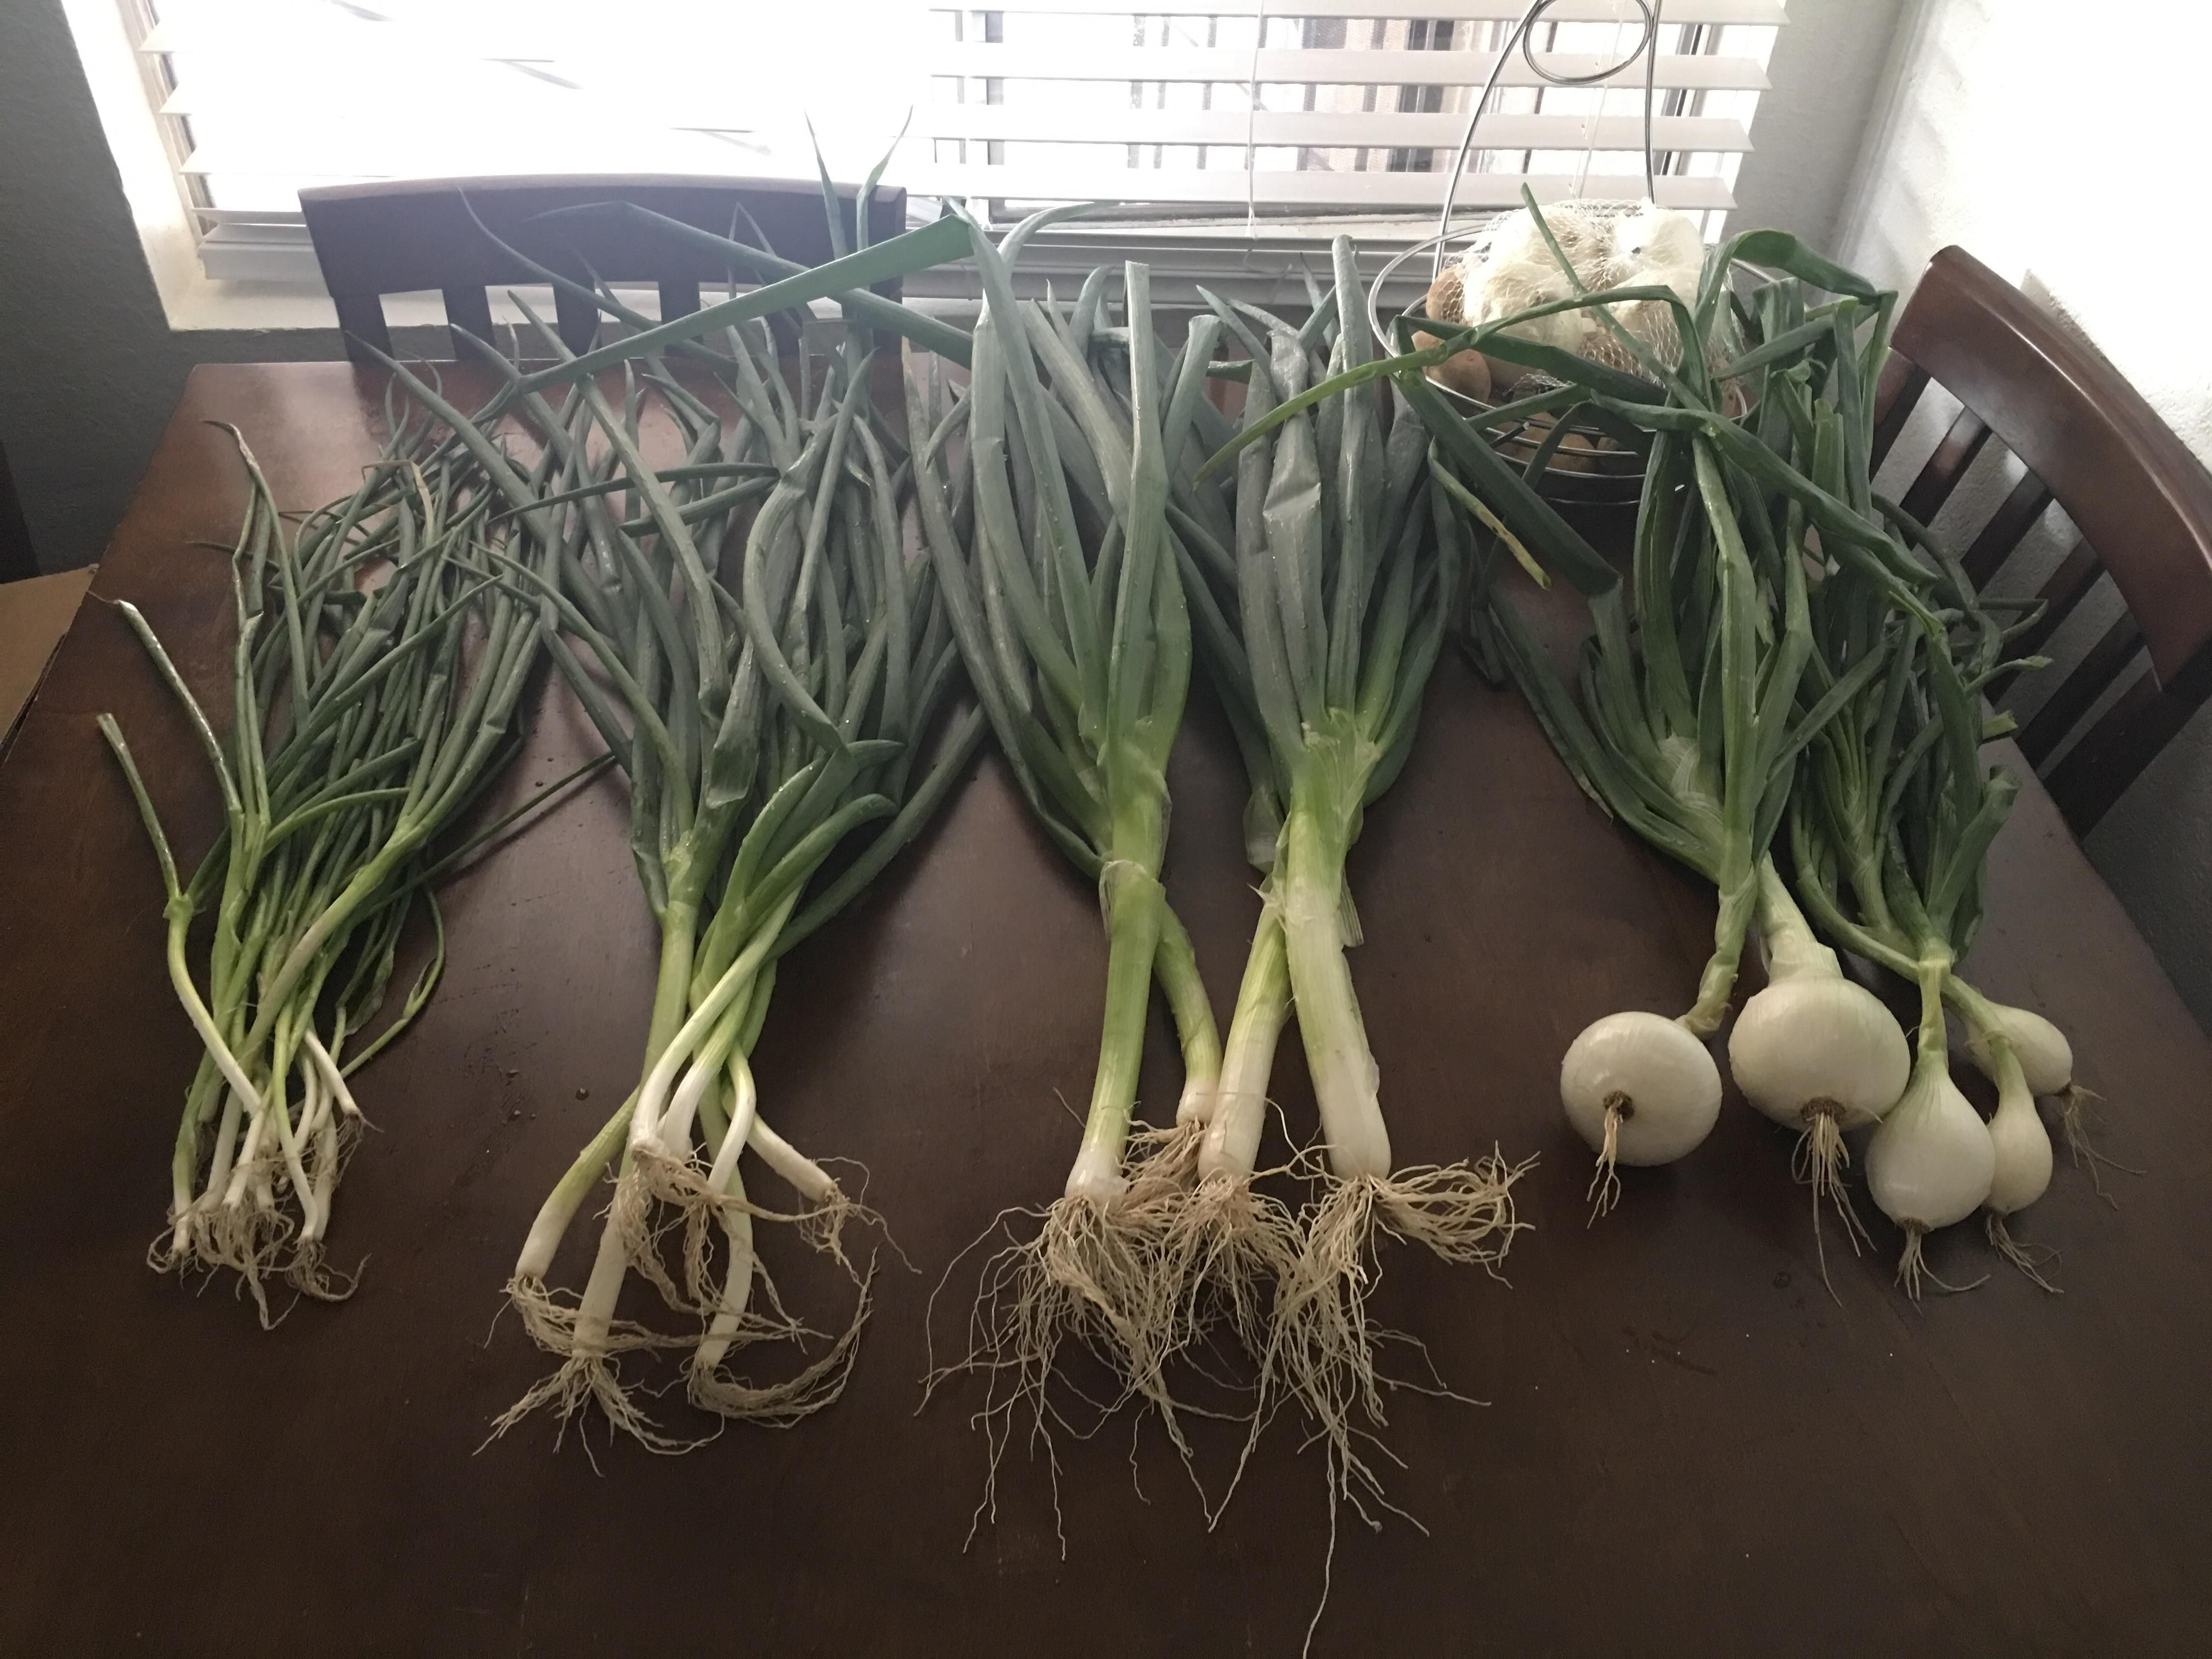 Our first harvest socal home garden chives scallions